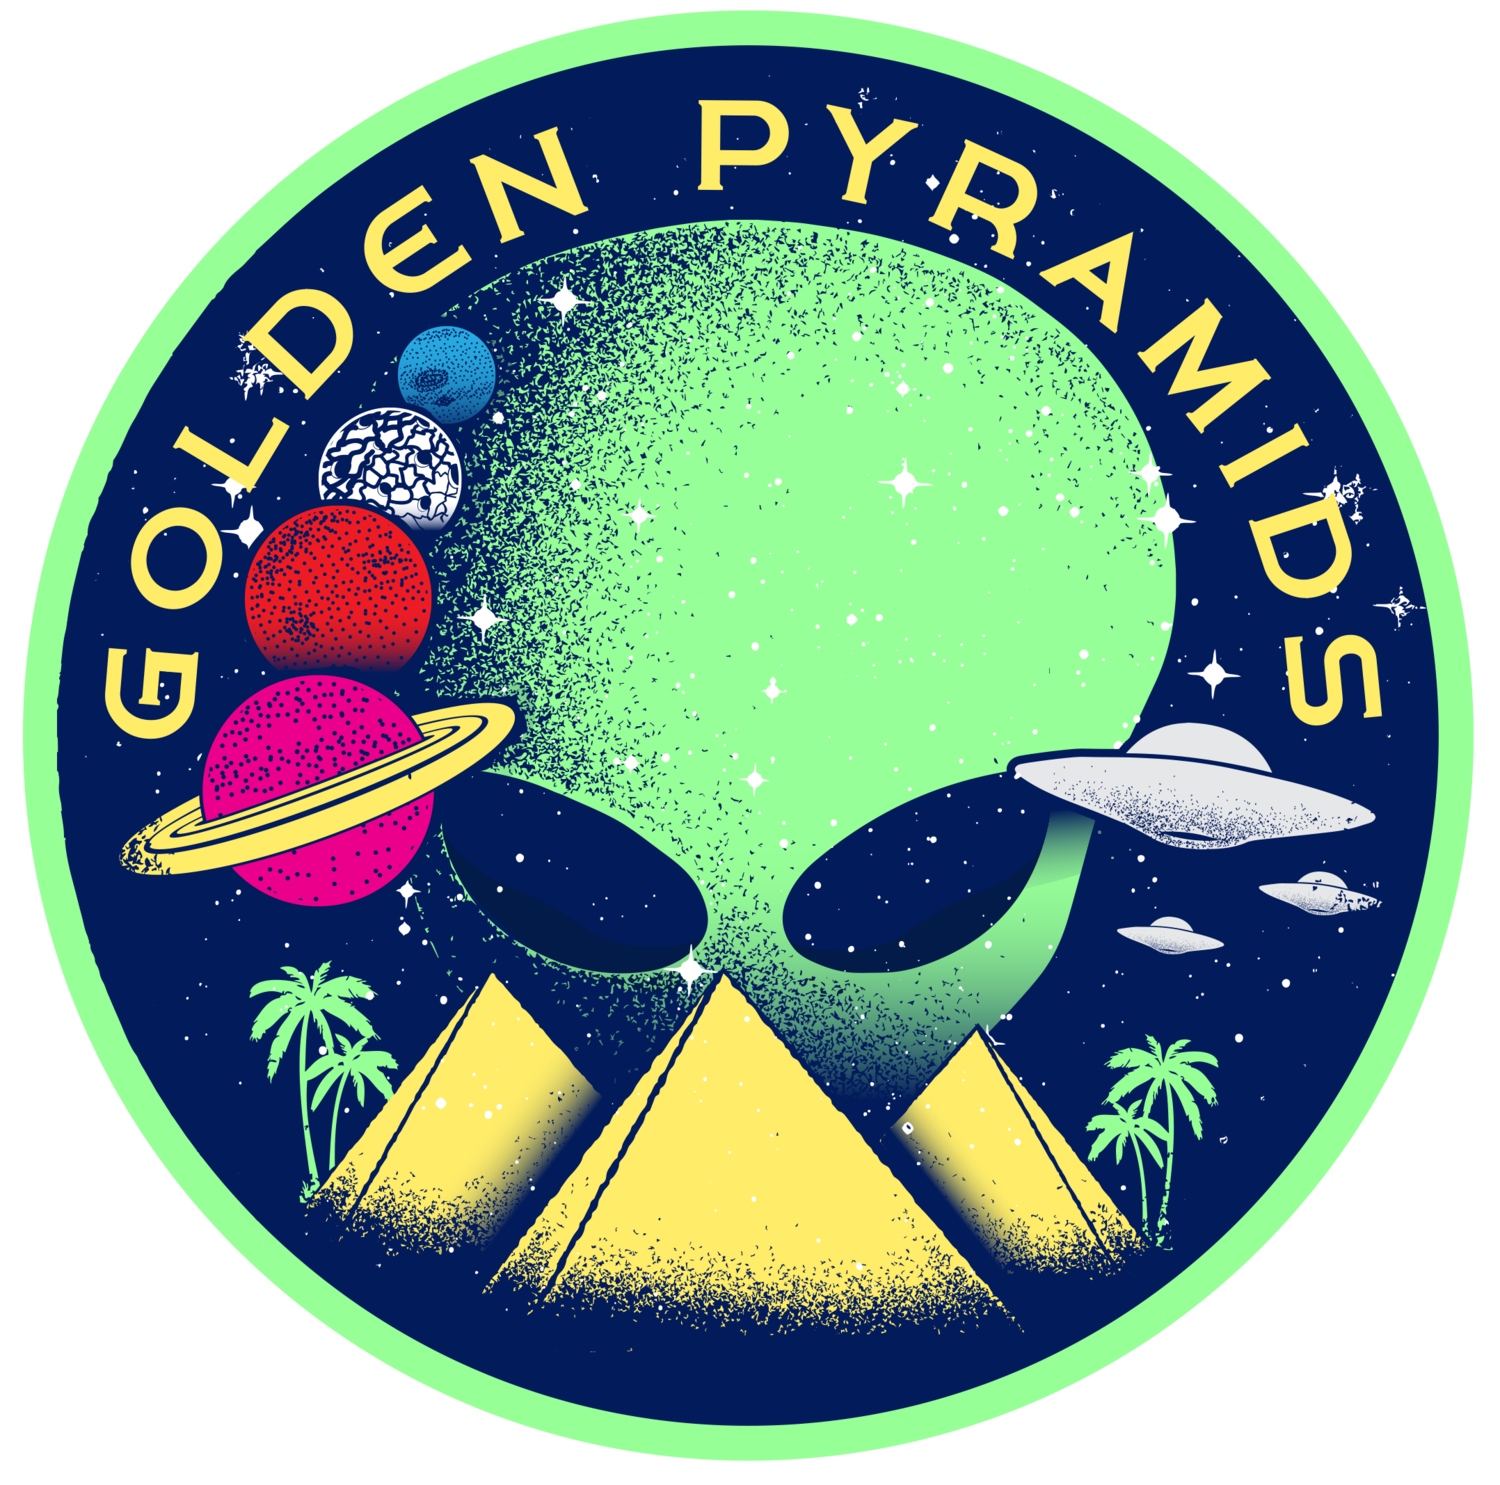 Golden Pyramids Network